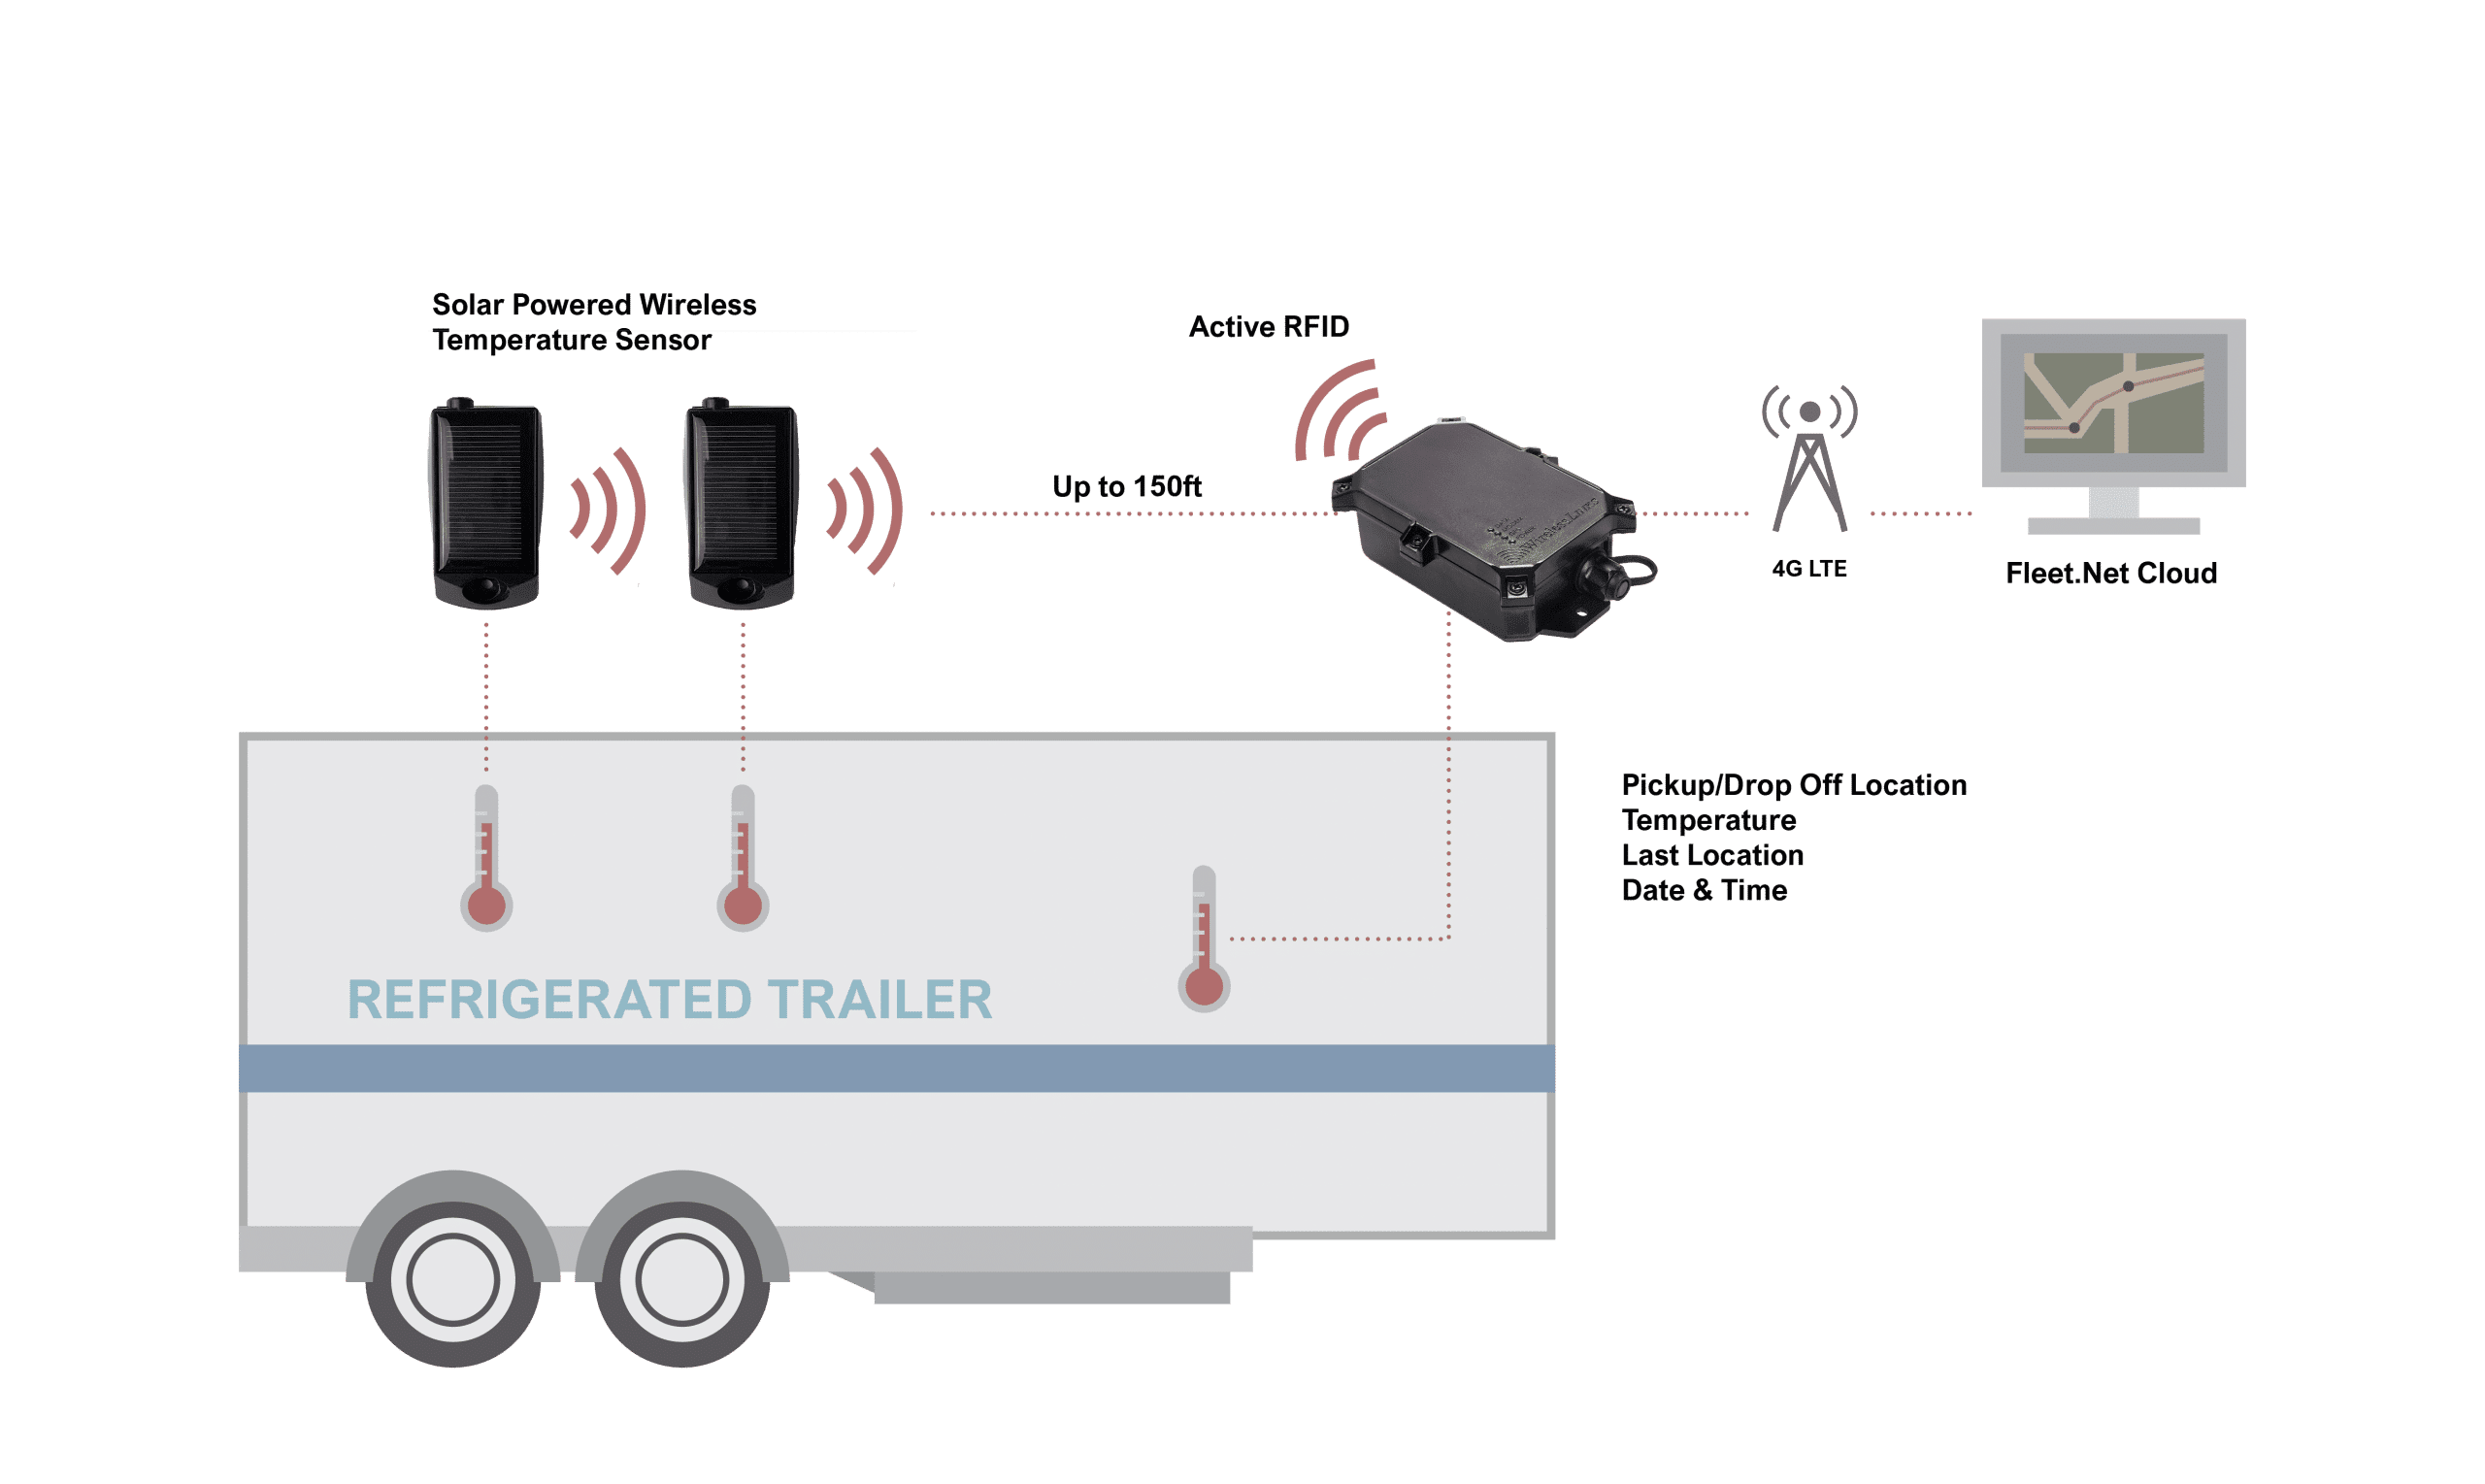 RFID tags refrigerated reefer tracking system